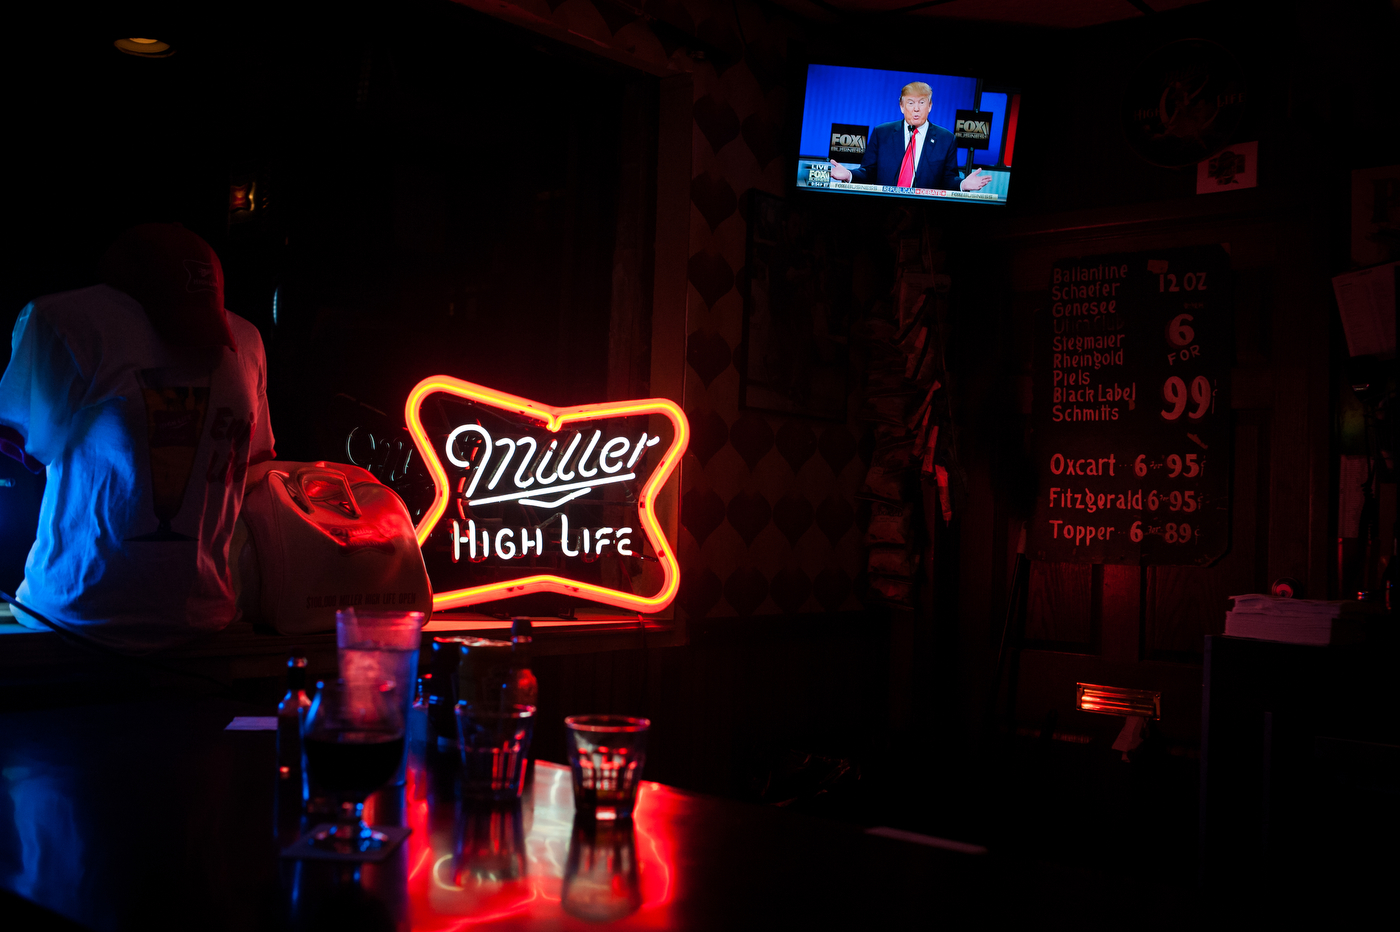 Republican U.S. presidential candidate Donald Trump is seen on TV at the High Life Lounge in Des Moines, Iowa as he participates in the the Republican debate on FOX Business network in Columbia, South Carolina on January 14, 2016.